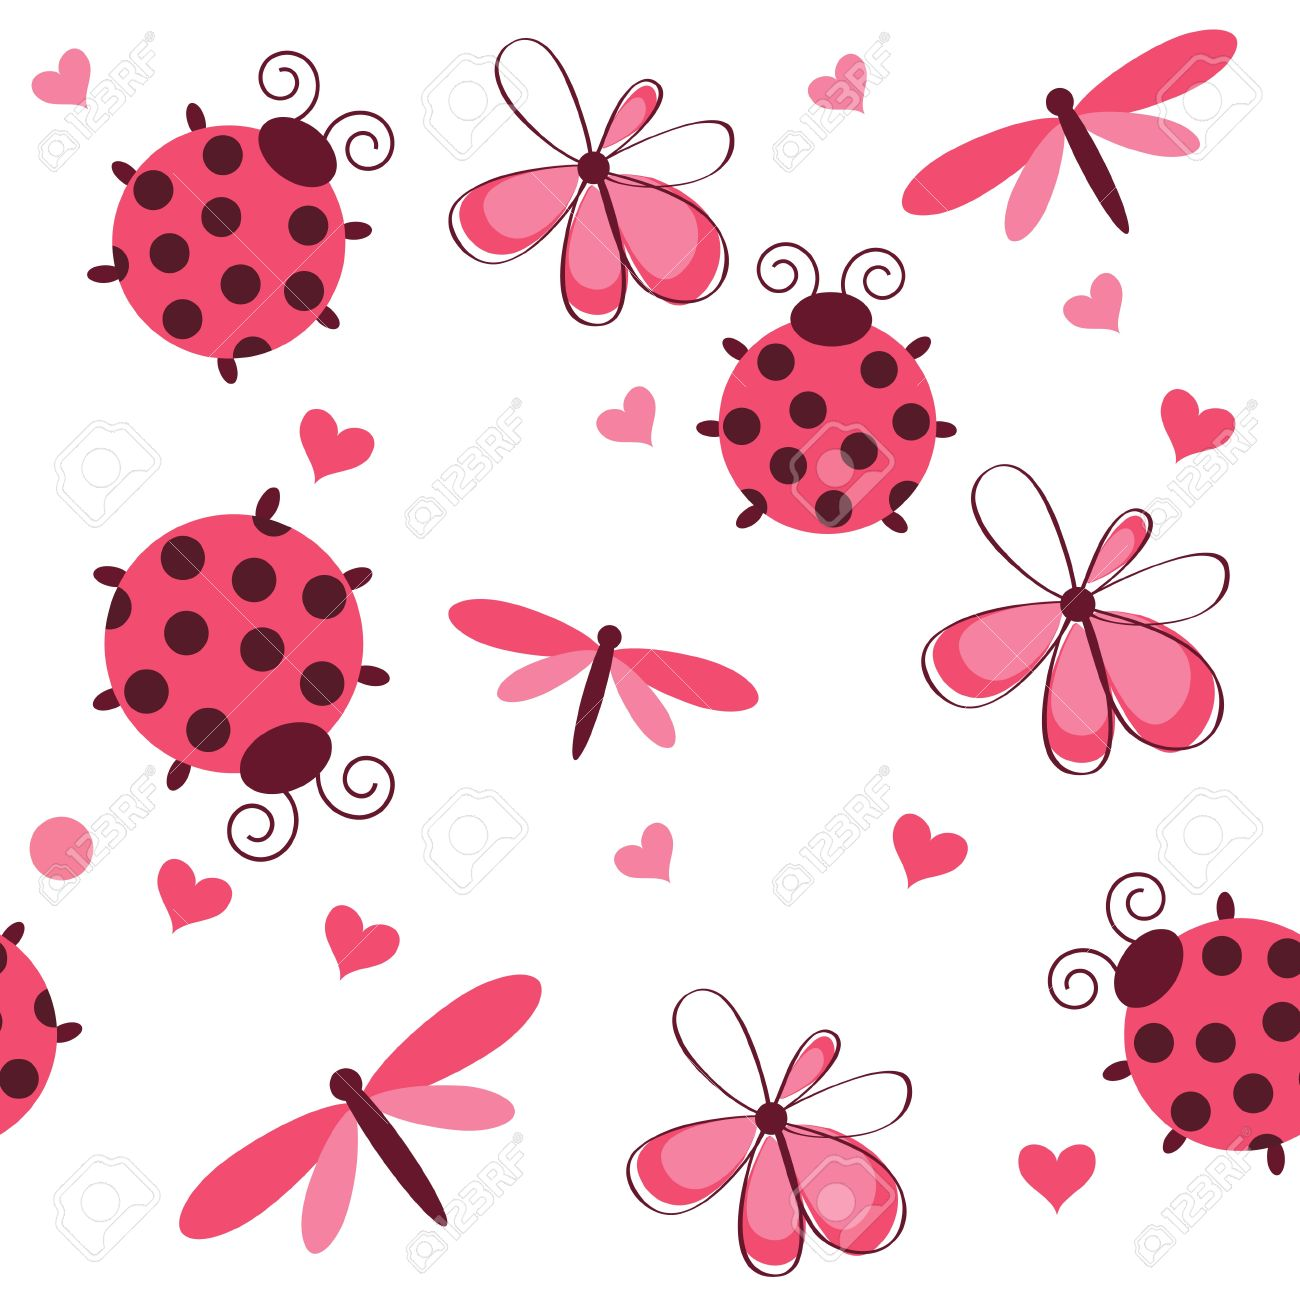 Romantic seamless pattern with dragonflies, ladybugs, hearts and flowers on a white background Stock Vector - 11368184